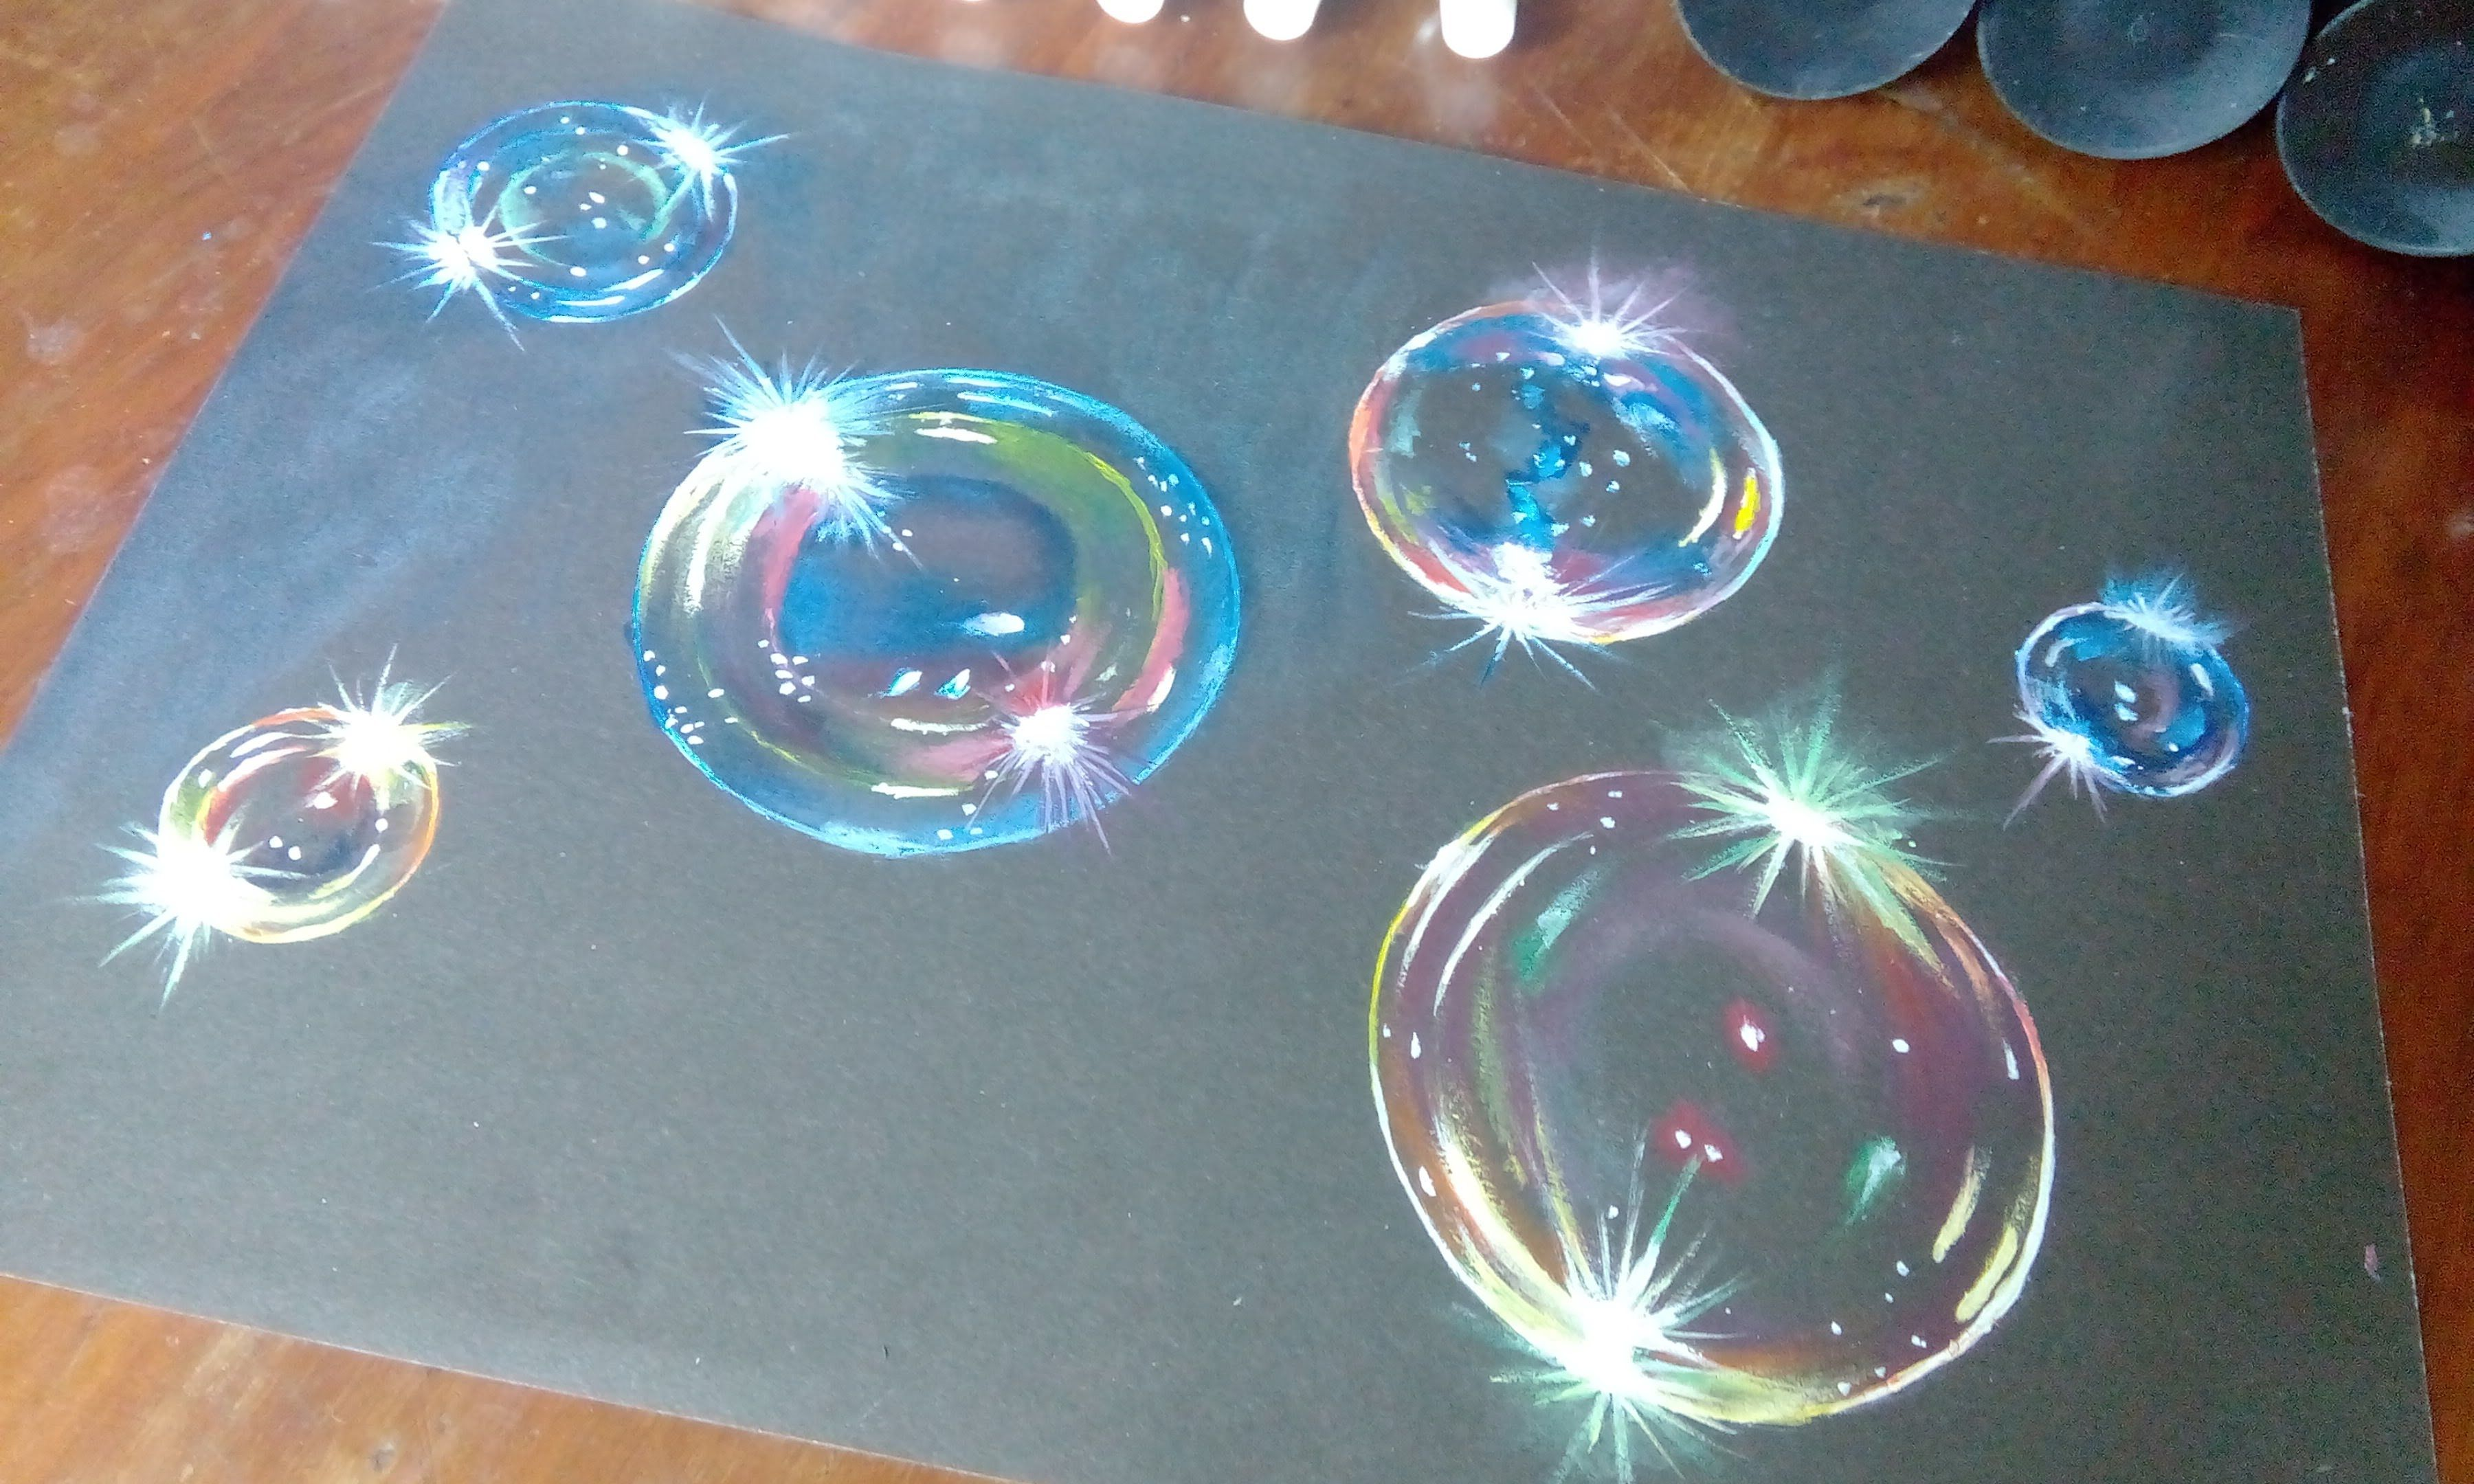 How To Paint Hyper Realistic Bubblesacrylic Painting Tutorial…